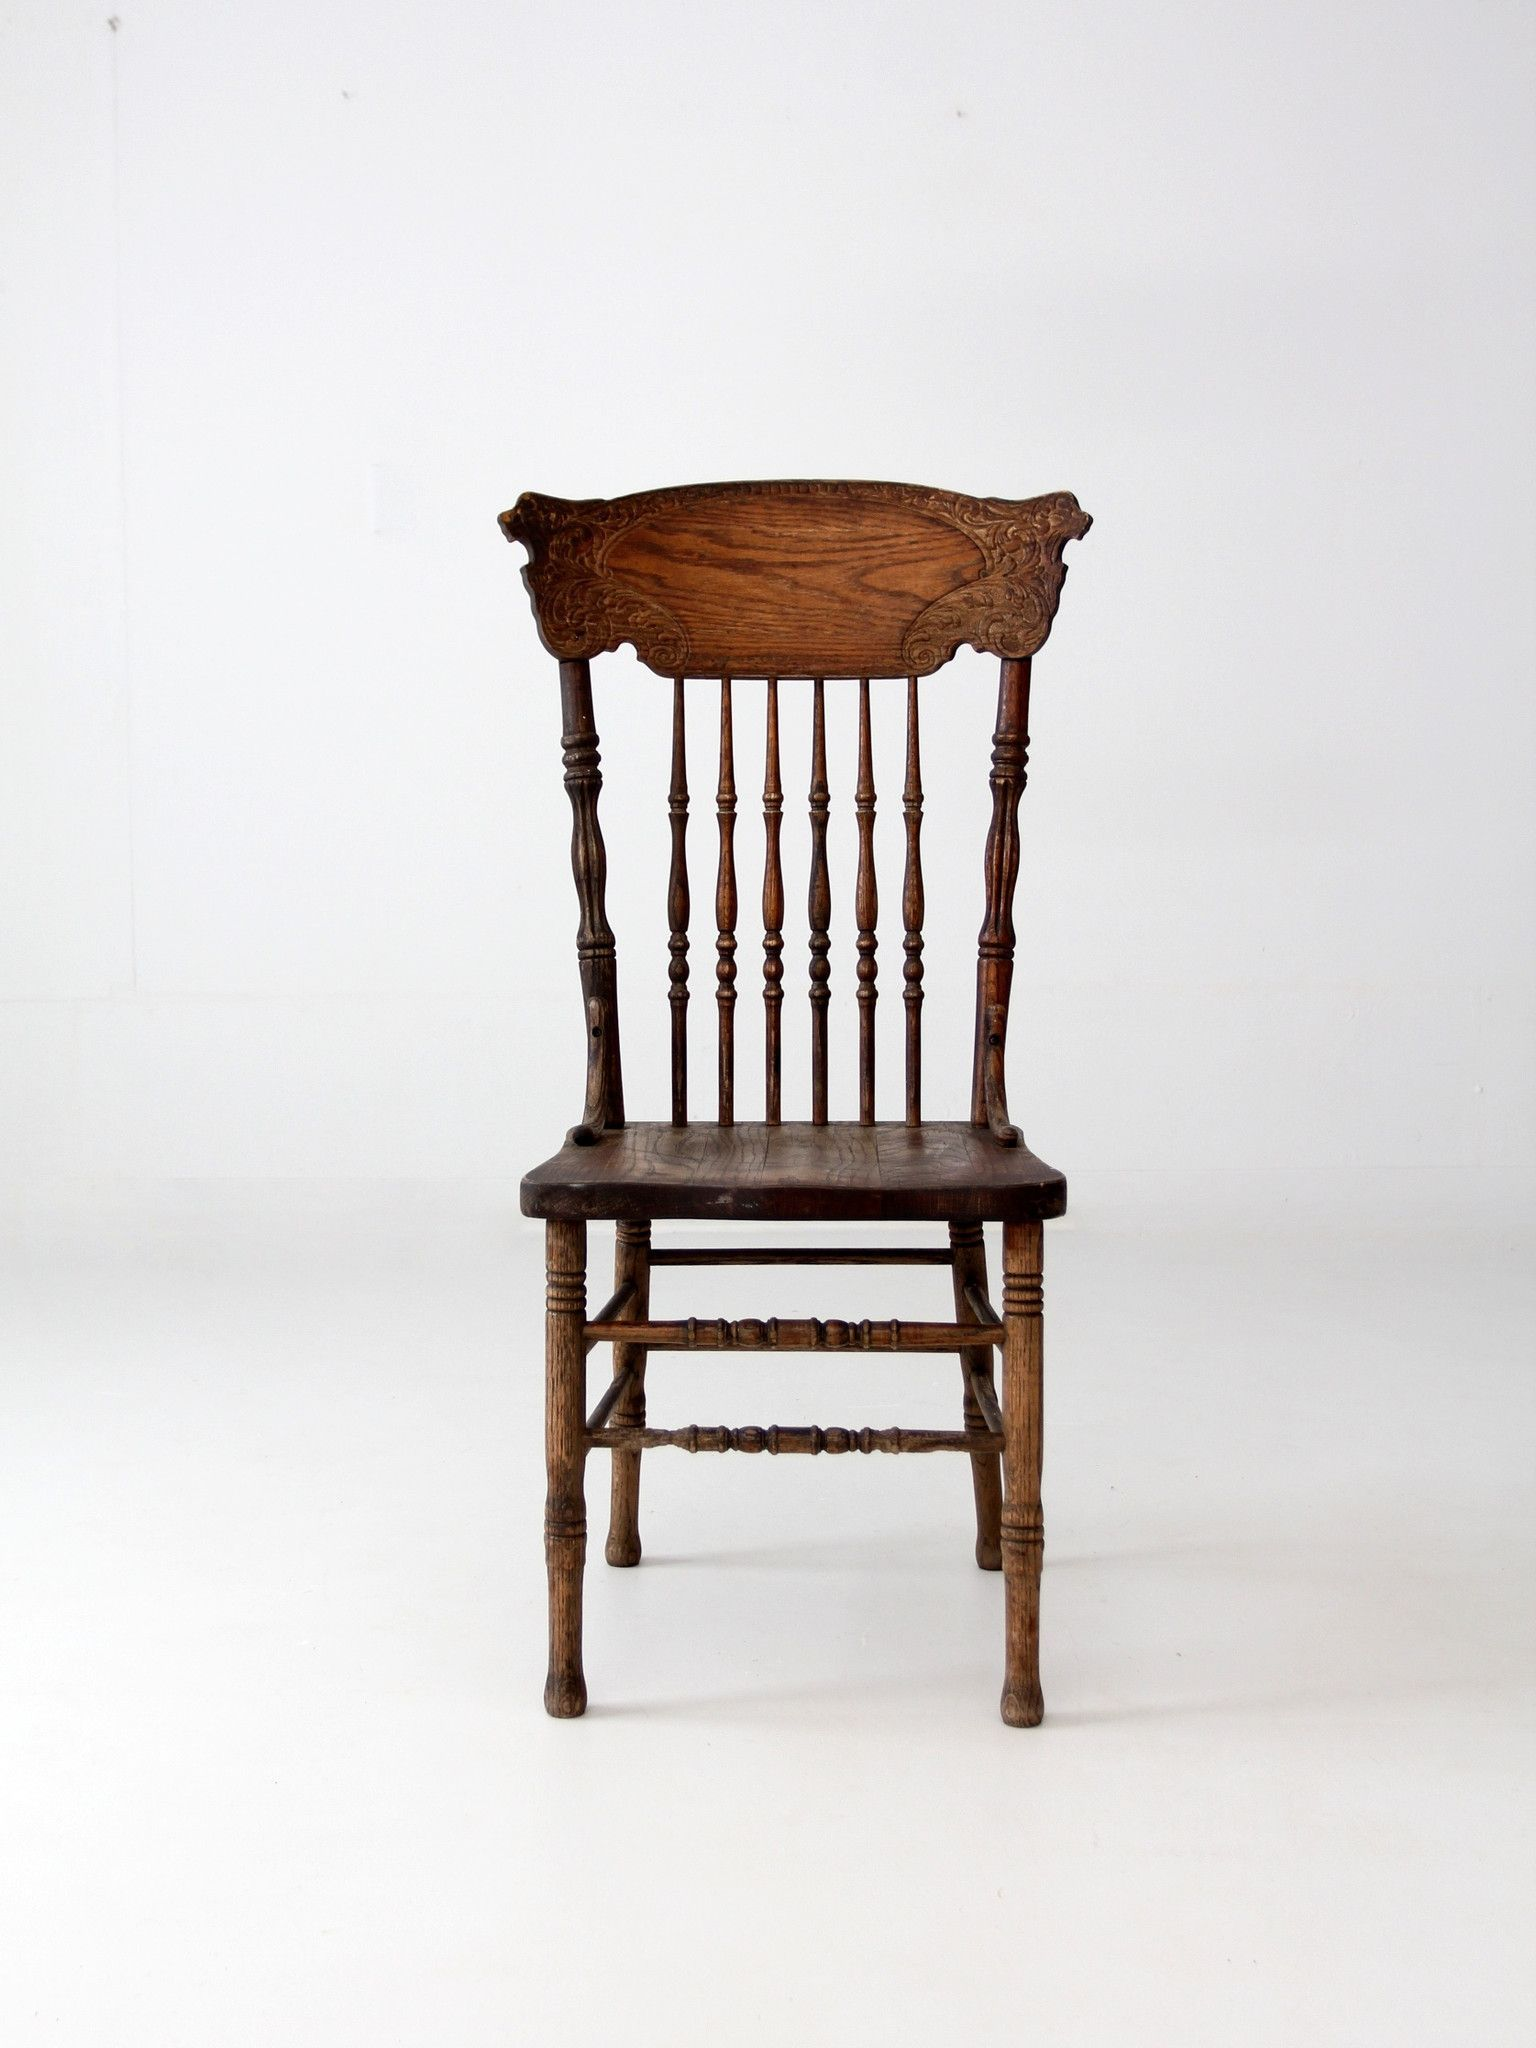 Antique wood dining tables antique oak press back chair  chair obsession  pinterest  antique